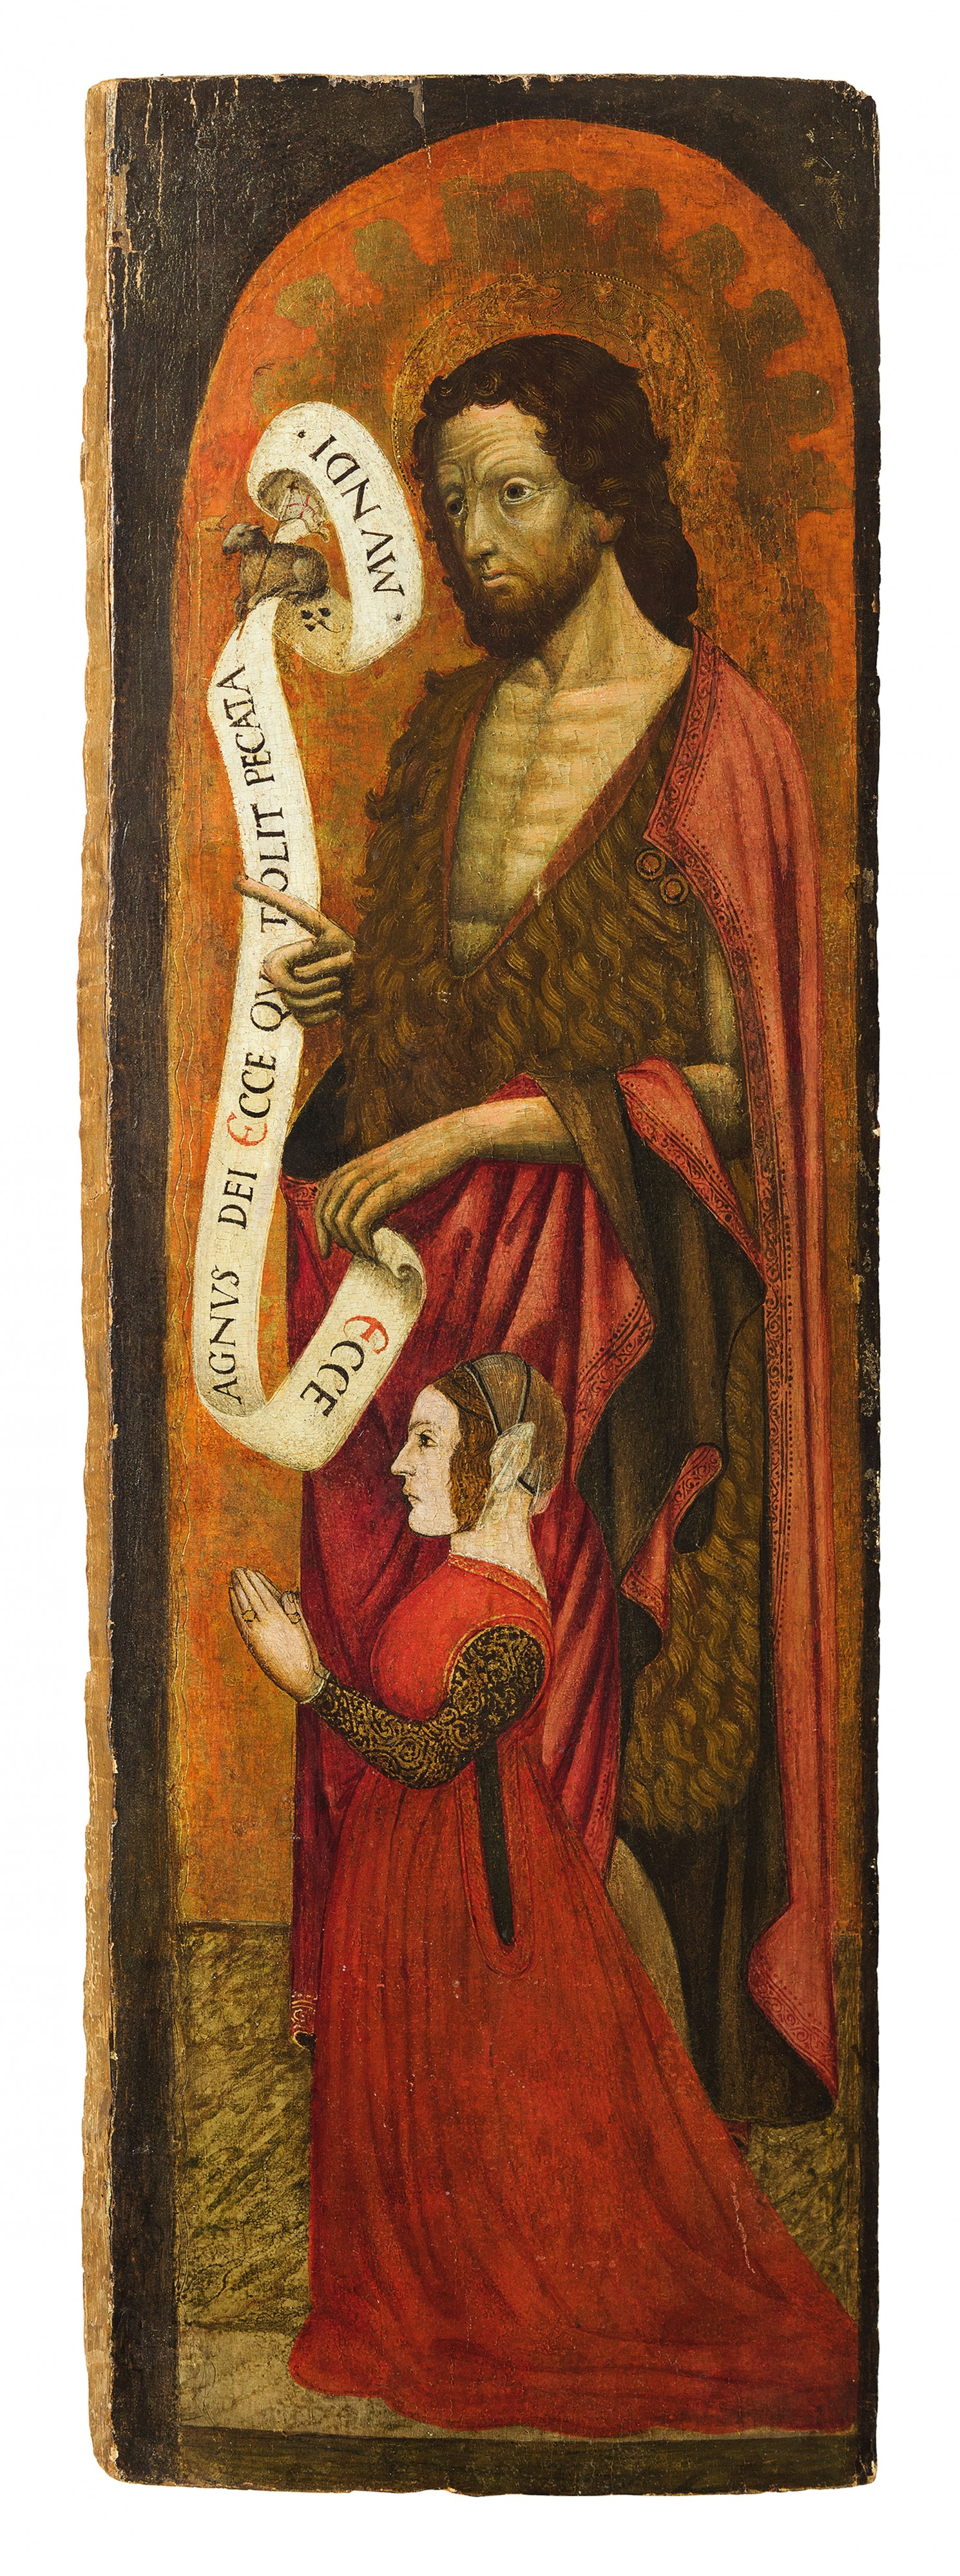 San Giovanni Battista e Donatrice, 15th century Lombardian, estimated at £17 135-25 650 and sold for nearly £32 000.